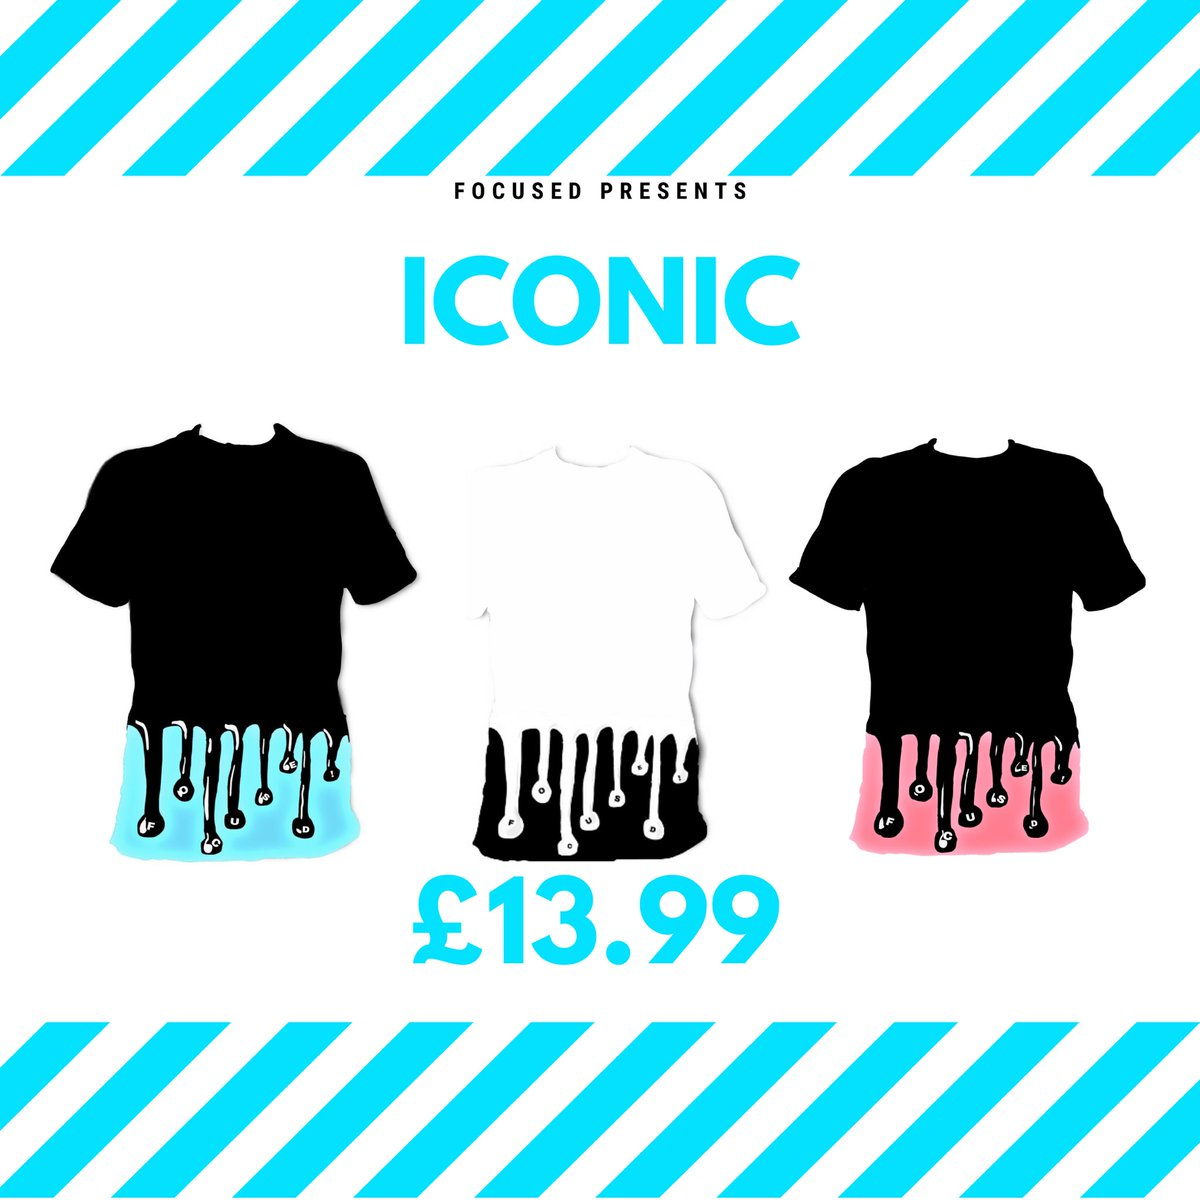 NEW PRODUCTS have launched on our website, available in unisex sizes S-XXXL http://focused17.square.site   #SupportSmallBusinesses #BlackOwnedBusiness #smallbusiness #ukbusiness #clothingcompany #clothing #fashion #drawing #artpic.twitter.com/HccqIthq9v